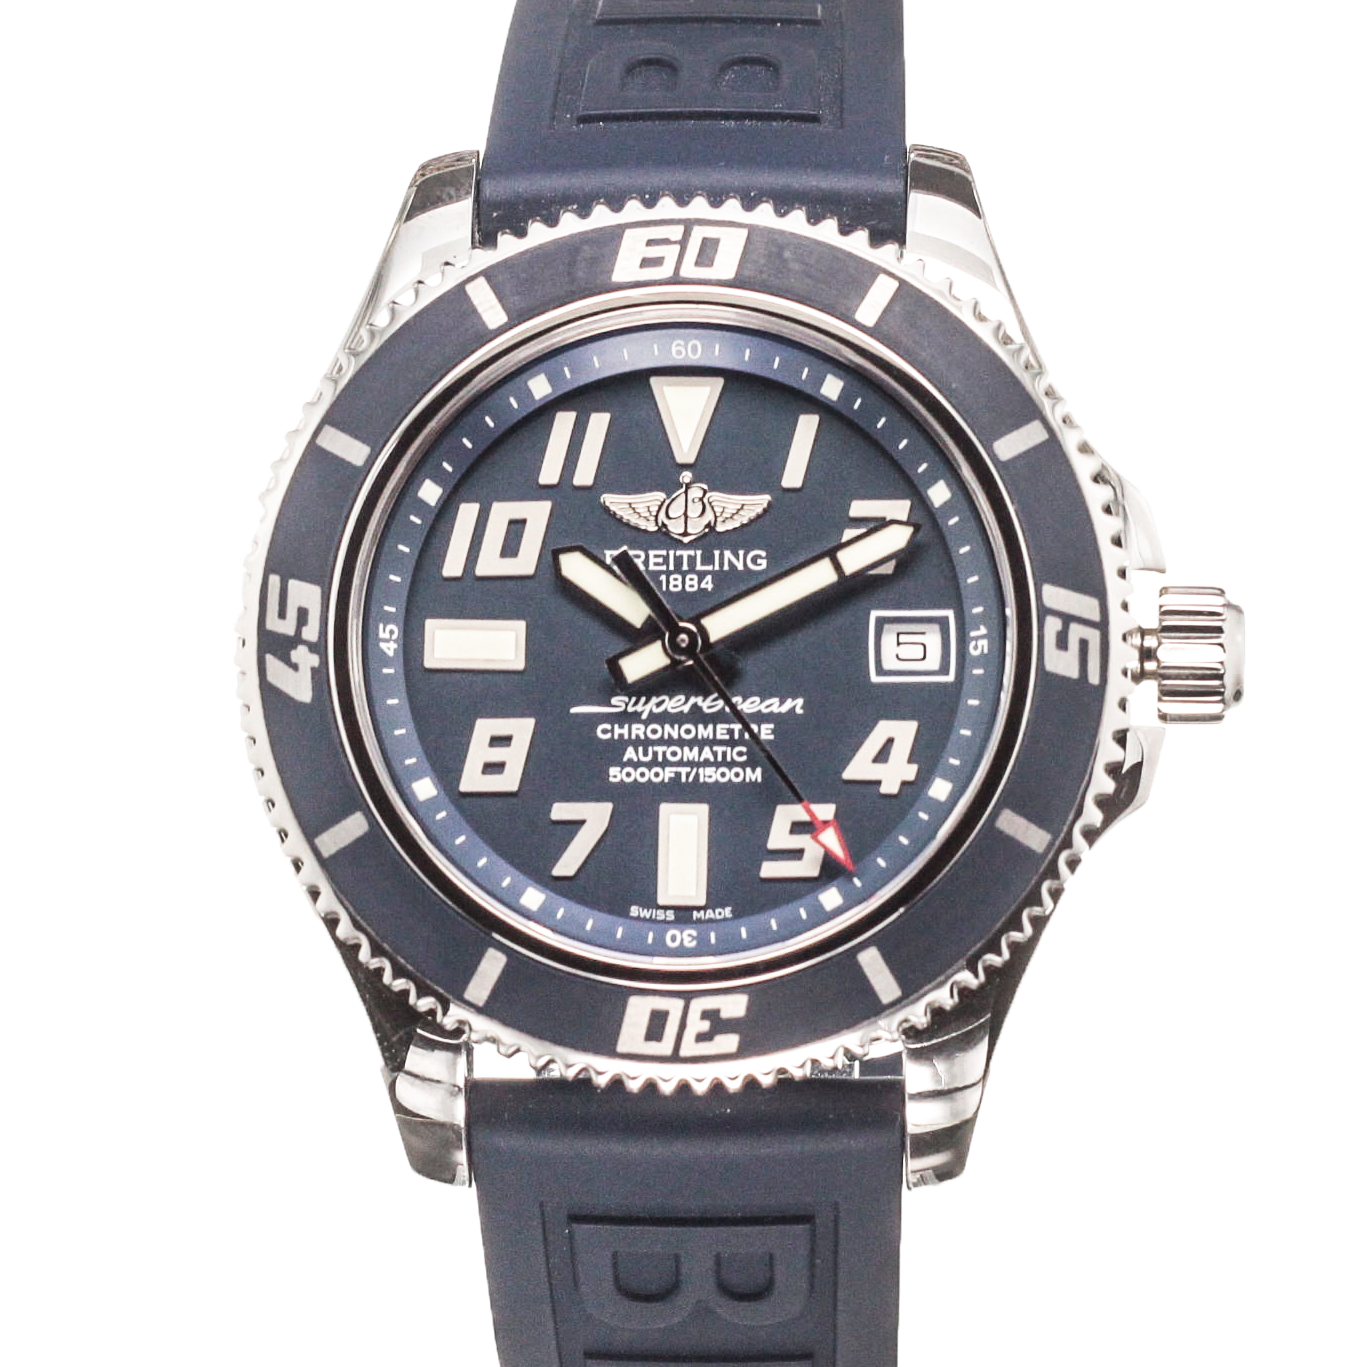 Breitling For Bentley Infos Price History: Breitling Superocean - Infos, Price & History